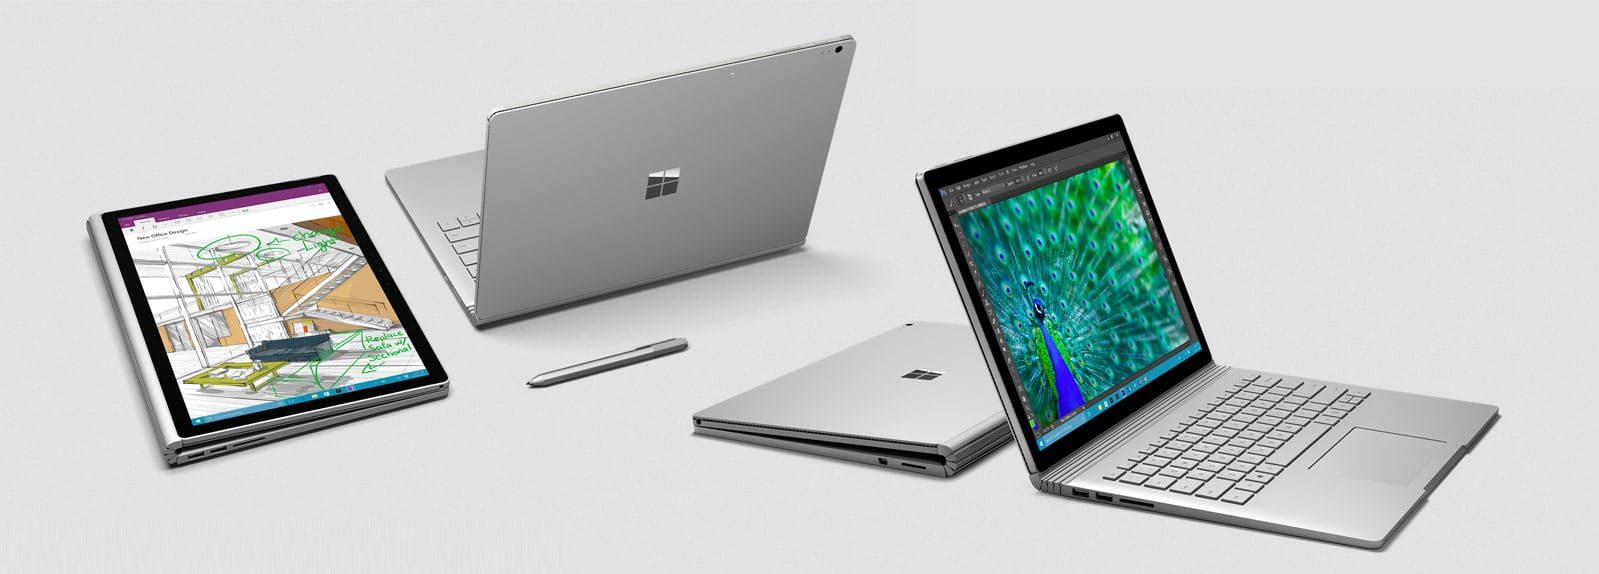 The Surface Book is excellent as a laptop and pretty good as a tablet as well, but its high price tag make it a hard buy for most